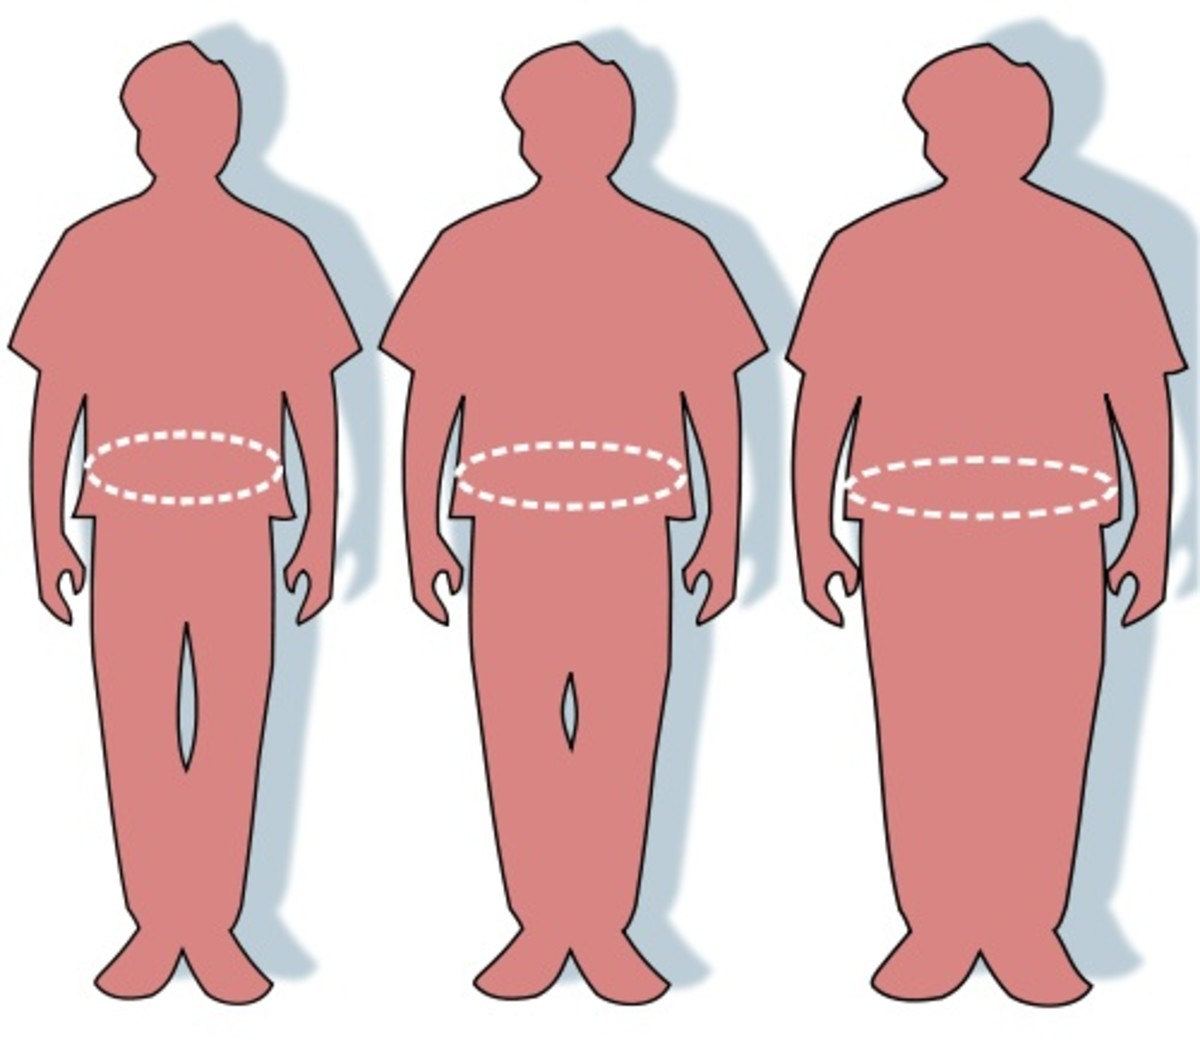 Abdominal obesity is the most serious type  with respect to health.